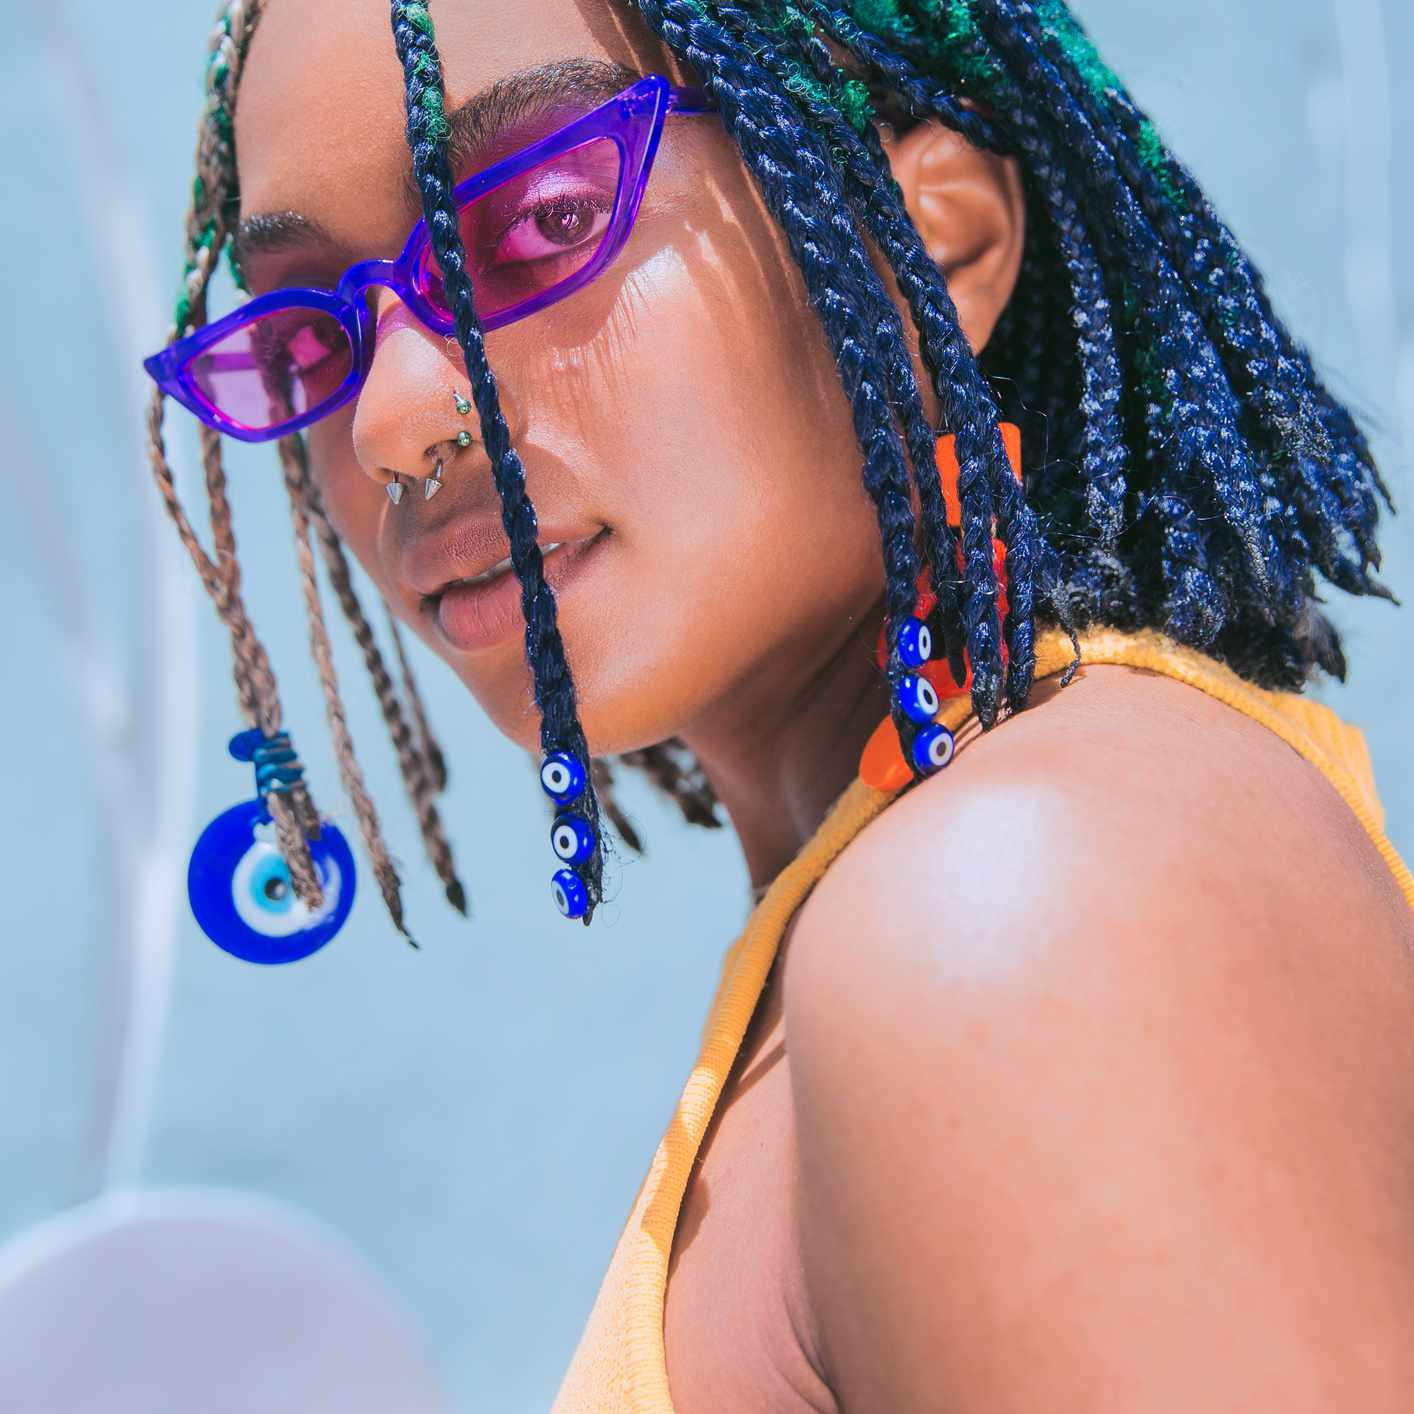 young woman with colorful hair and accessories